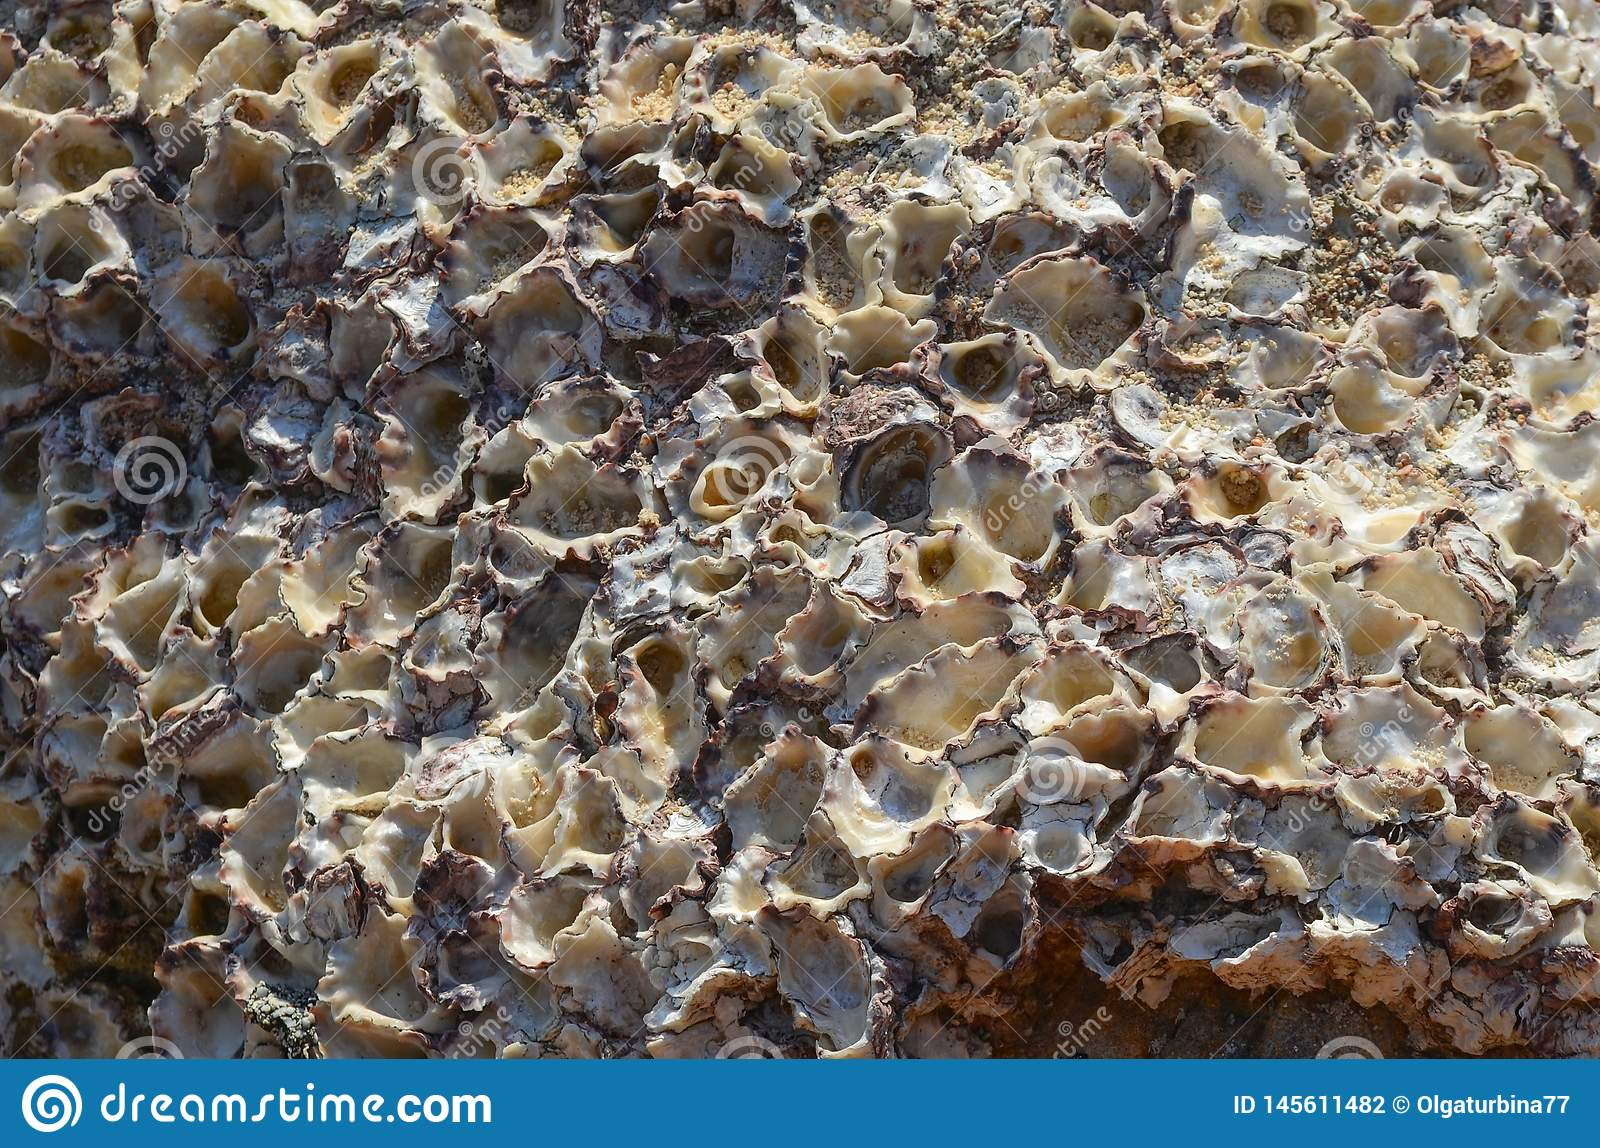 Wildlife  texture. Fossilized Shells in a Stone Reef